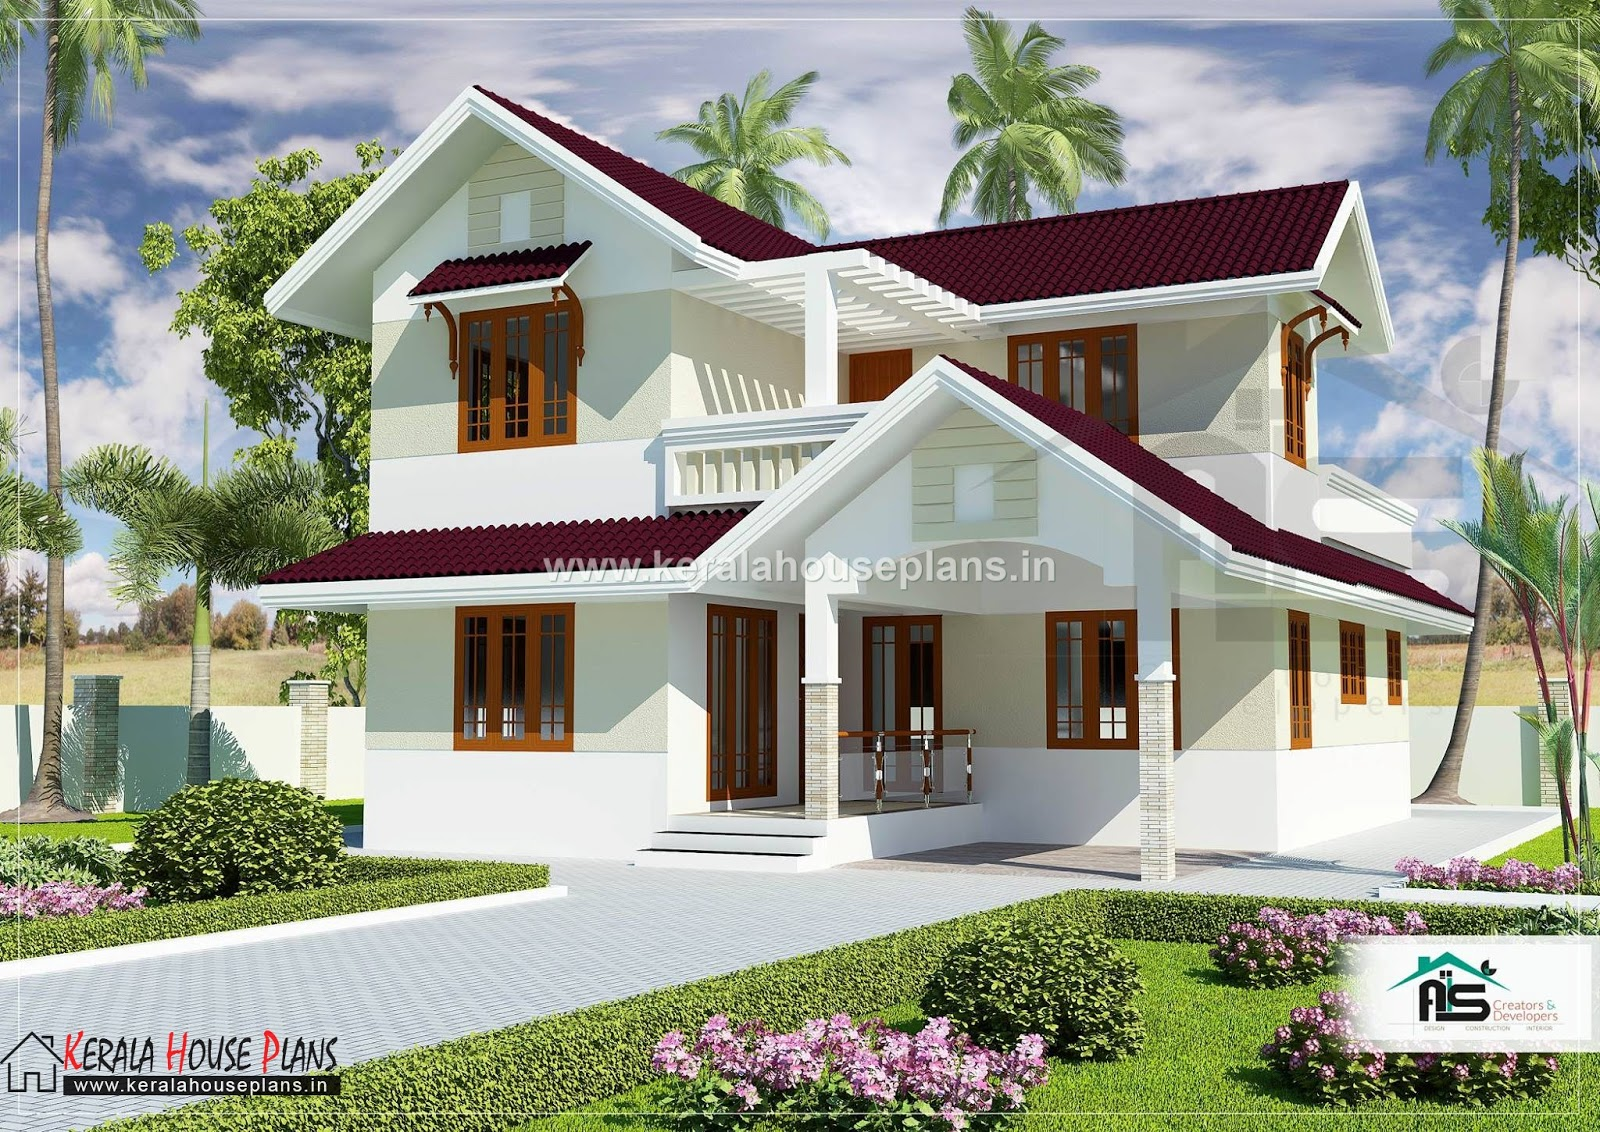 Kerala model house plans with elevation 1829 sqft kerala for Kerala house model plan